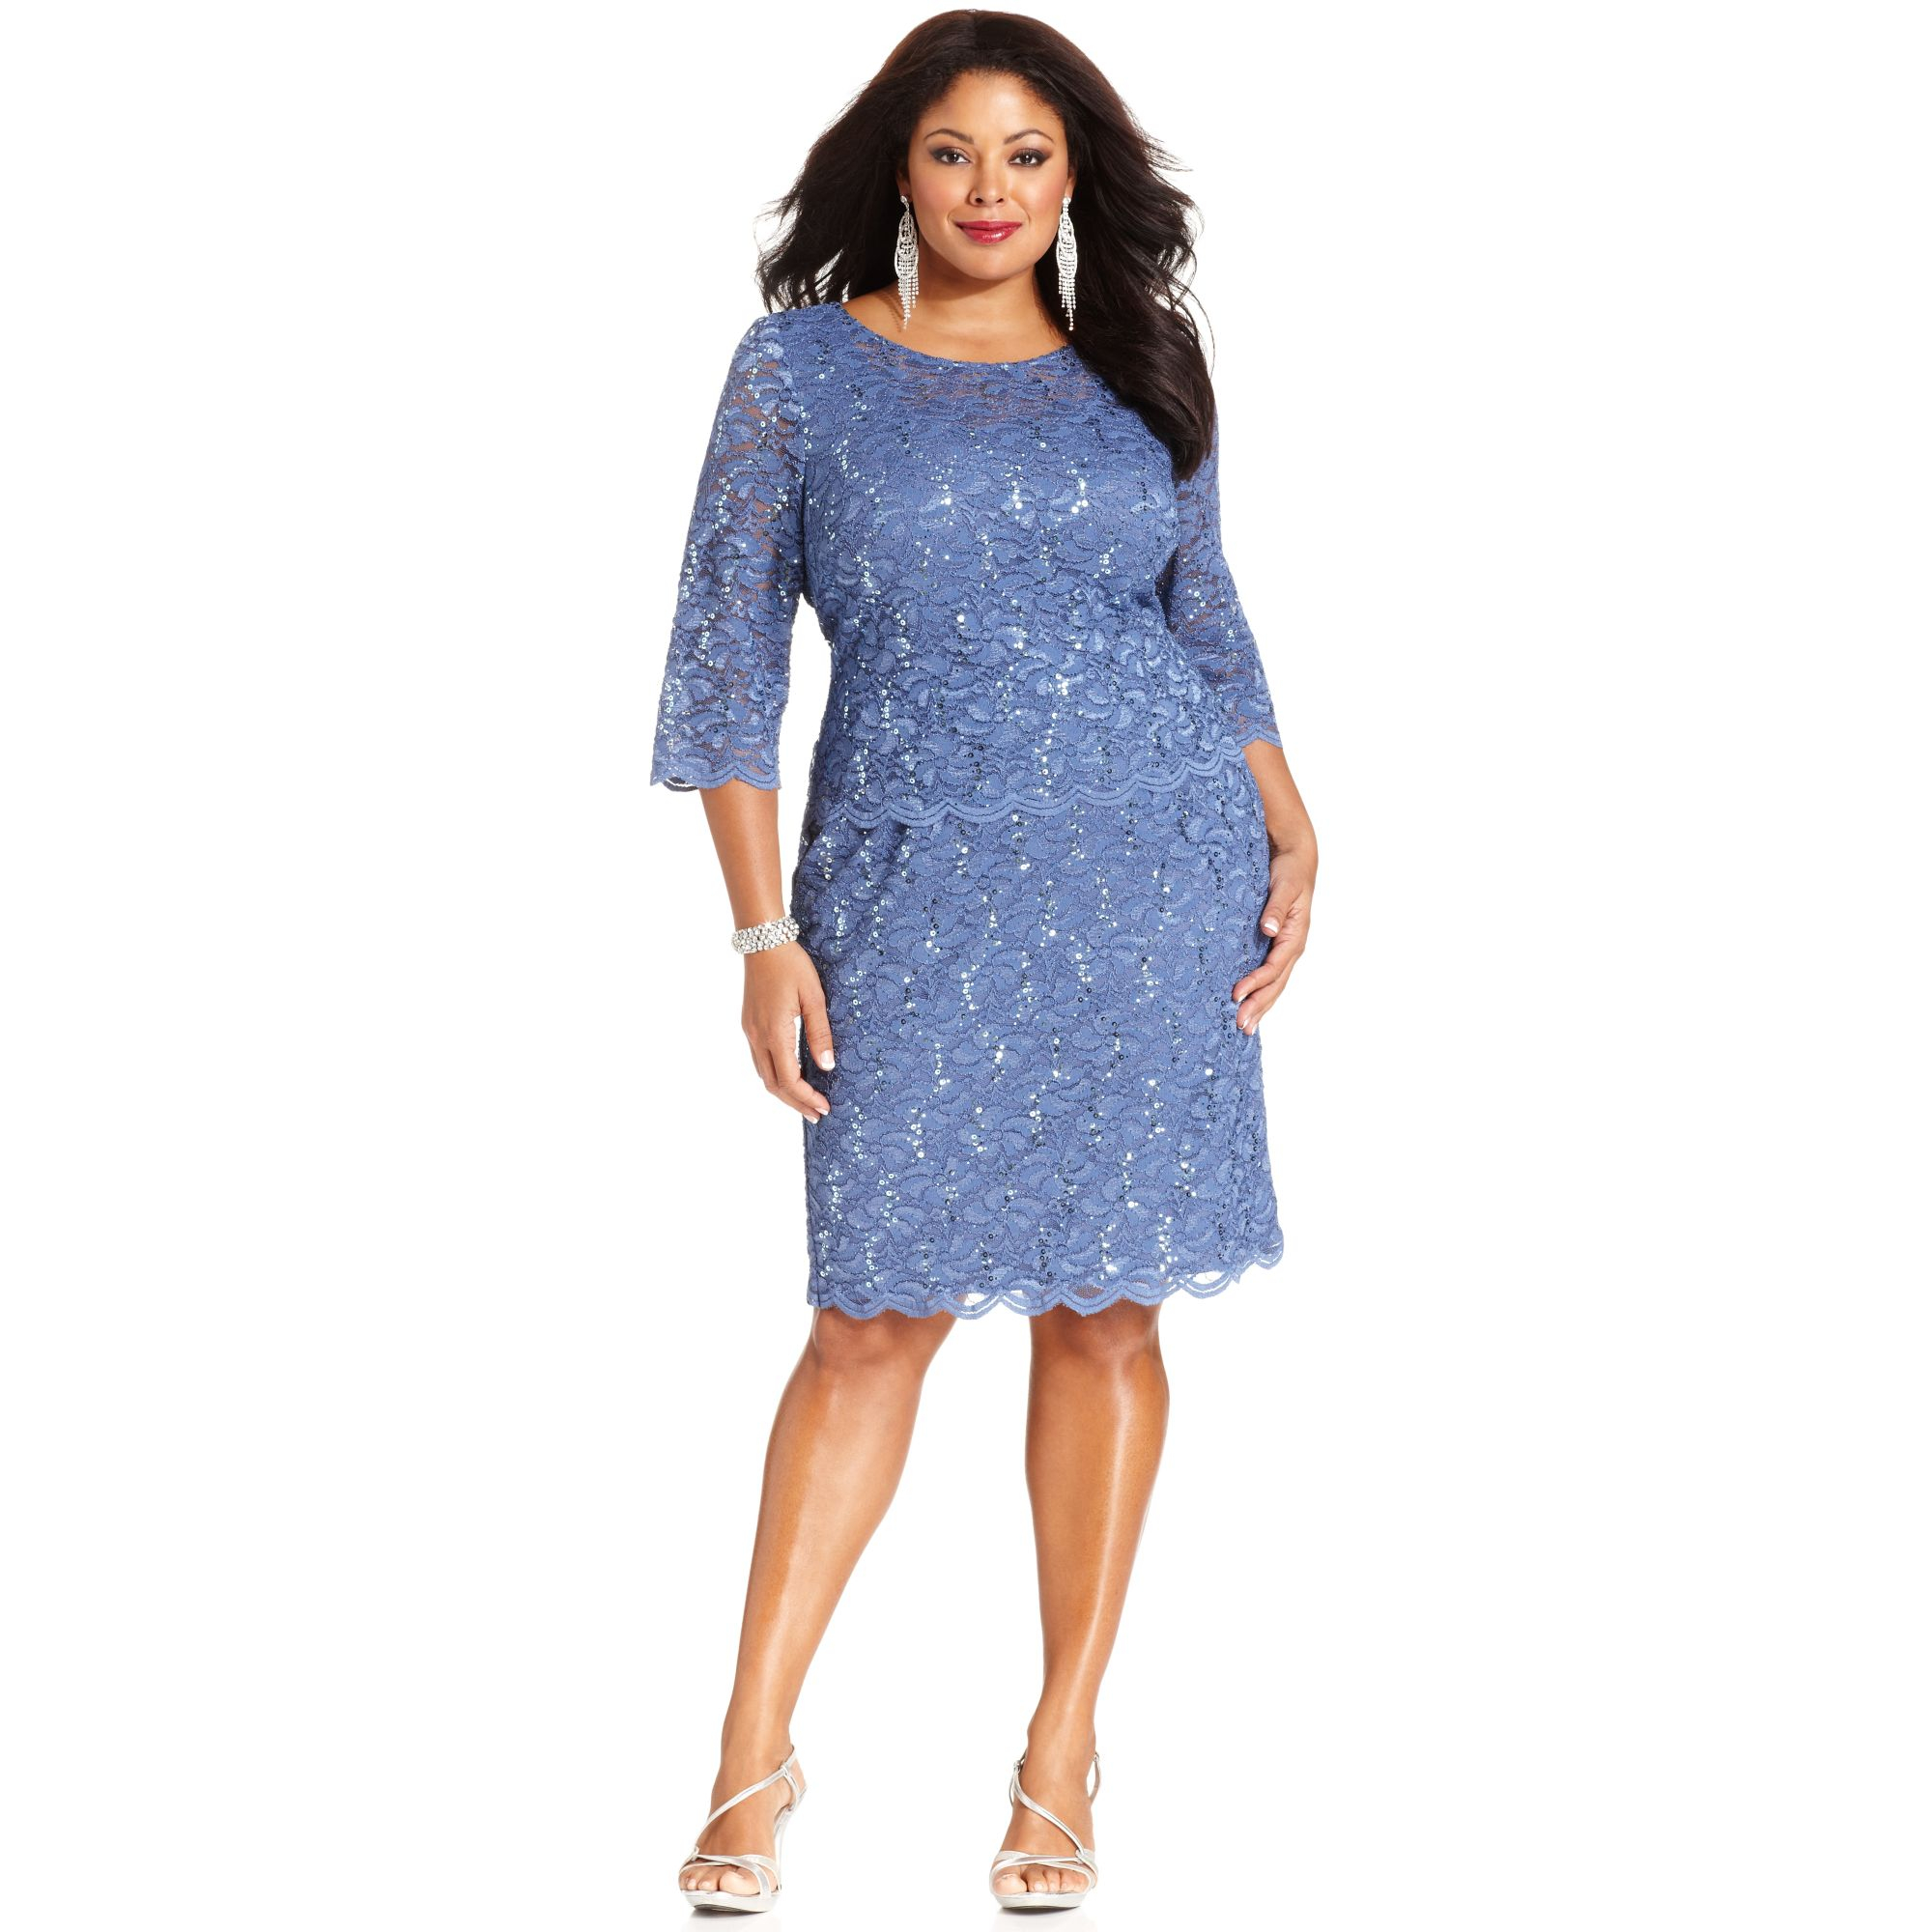 Plus Size Dresses At Macys - Ficts